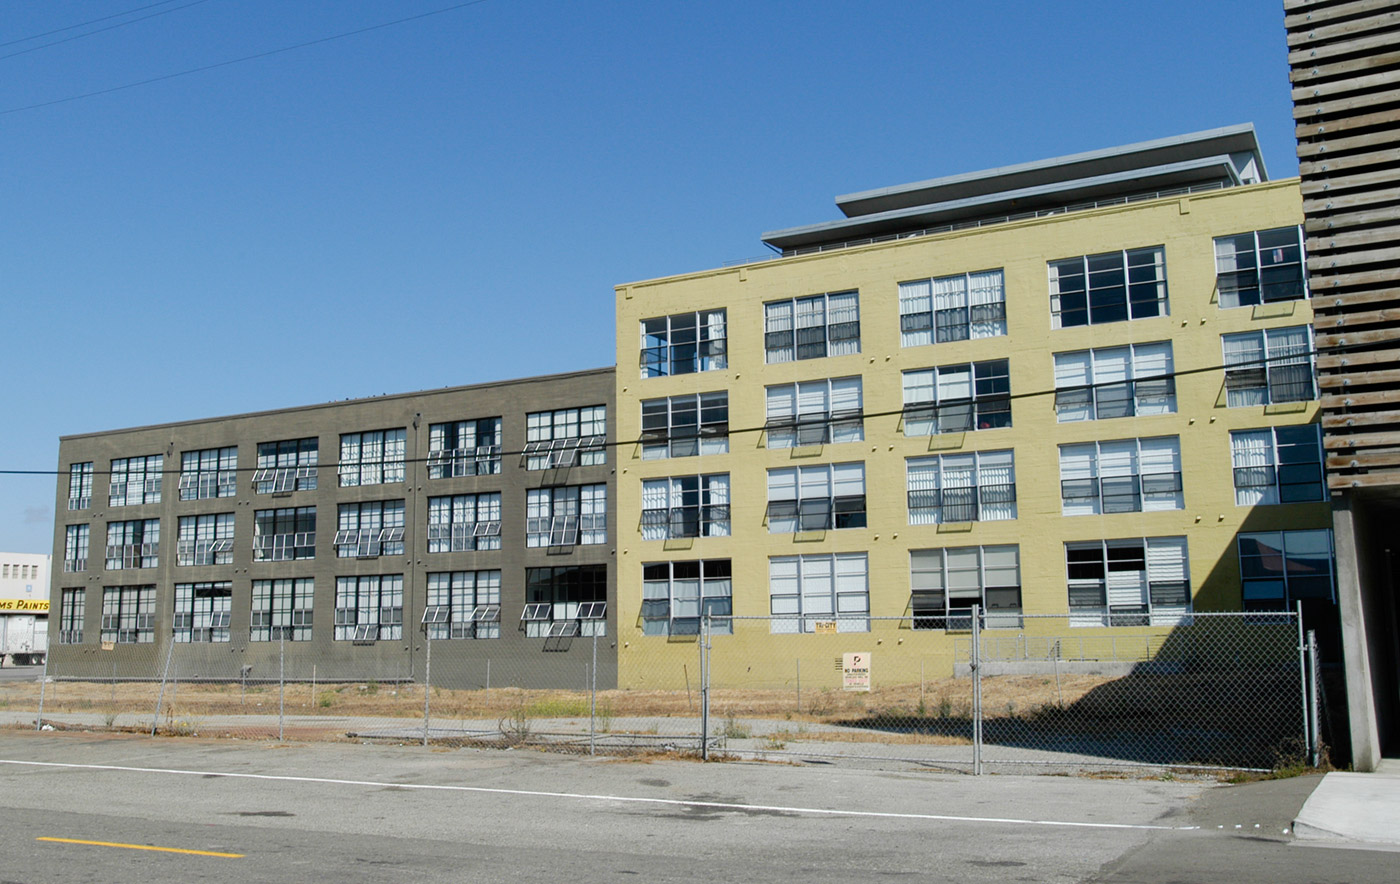 The renovated Emeryville Warehouse Co. building in 2002.